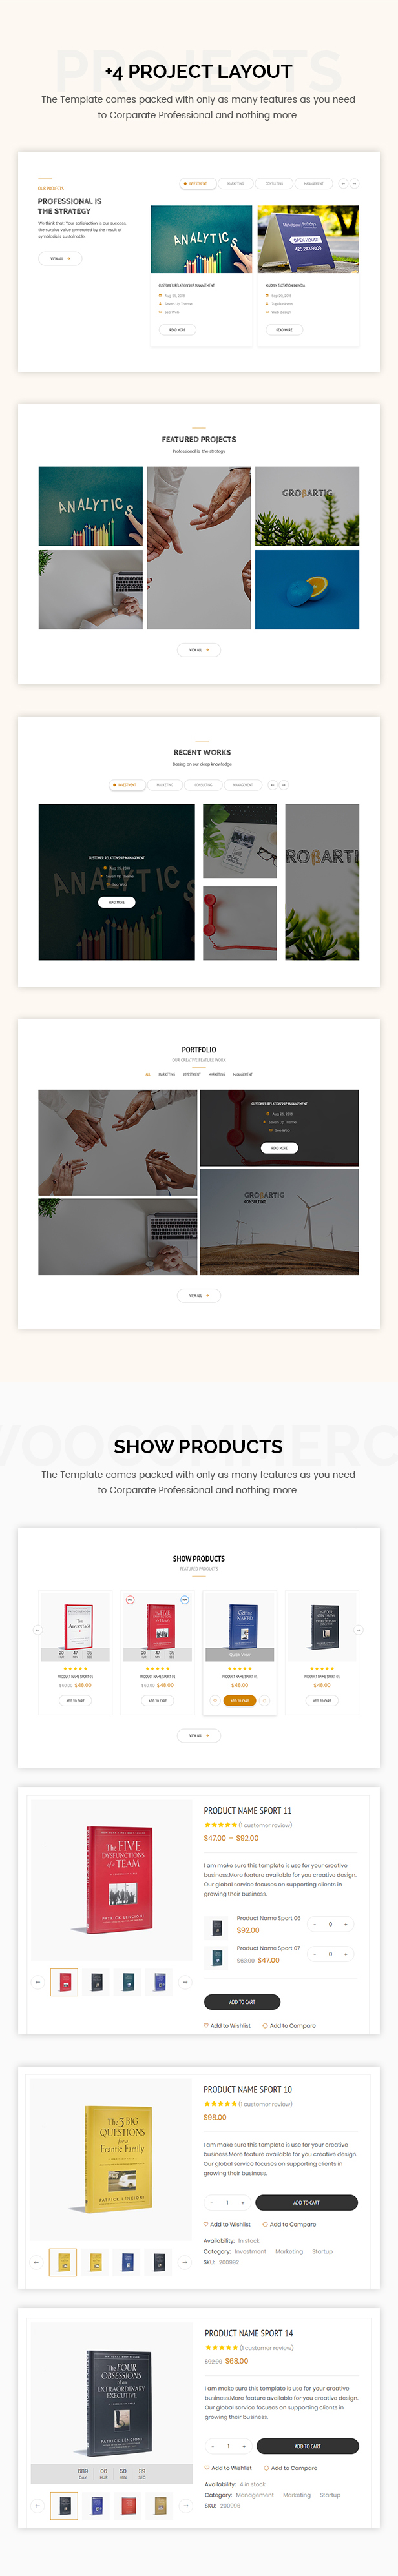 Geschaft - Business WooCommerce WordPress Theme - 5